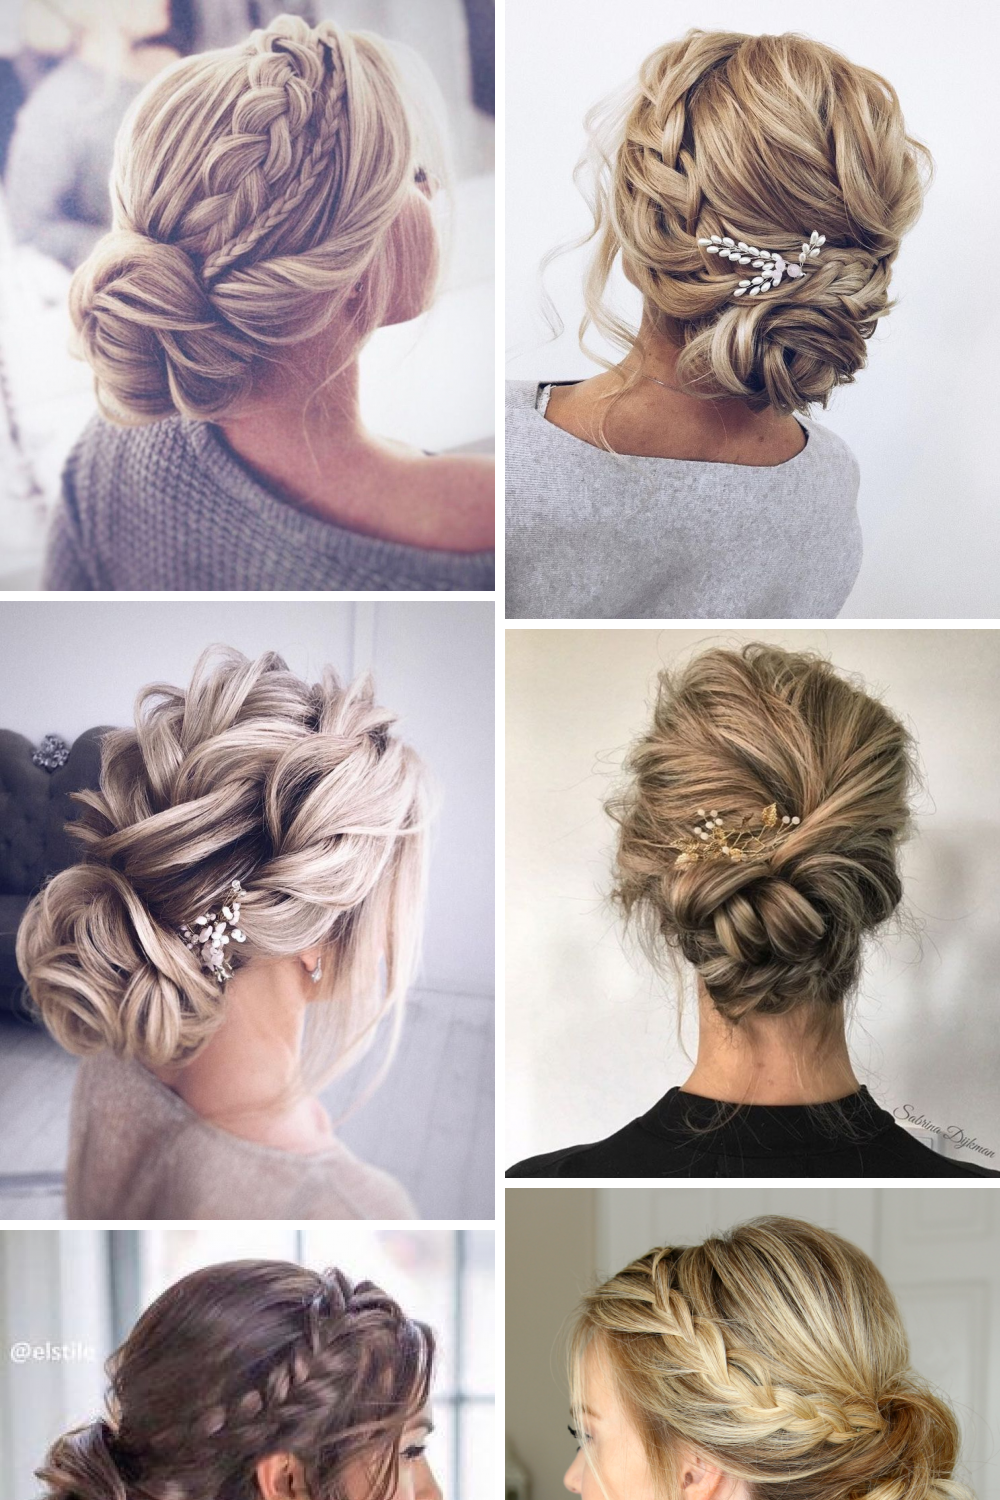 12 Stylish Wedding Braids Updo Pictures Short Wedding Hair Long Hair Updo Plaits Hairstyles